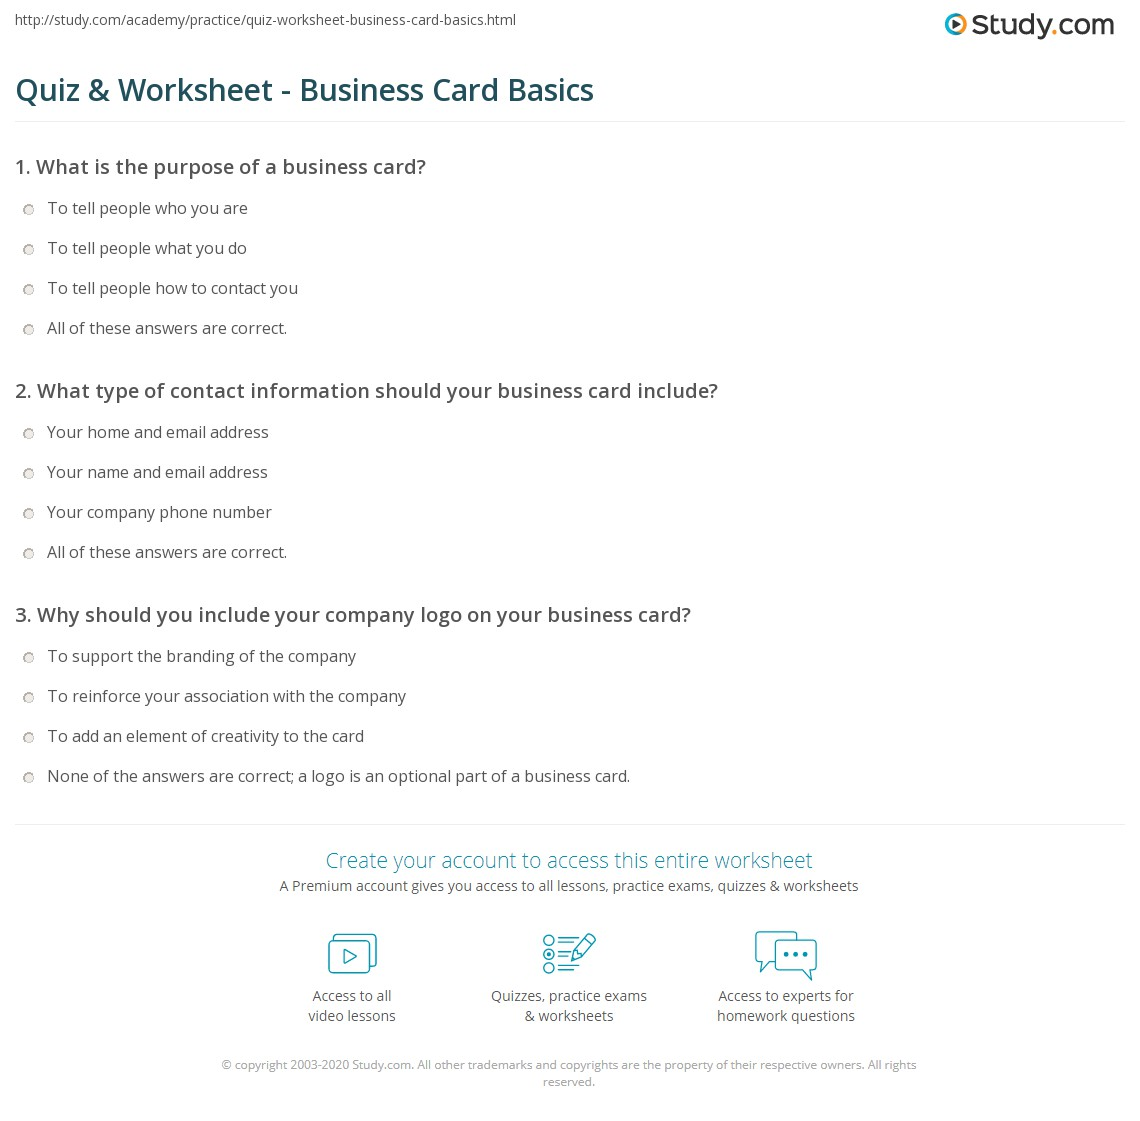 Quiz worksheet business card basics study what type of contact information should your business card include colourmoves